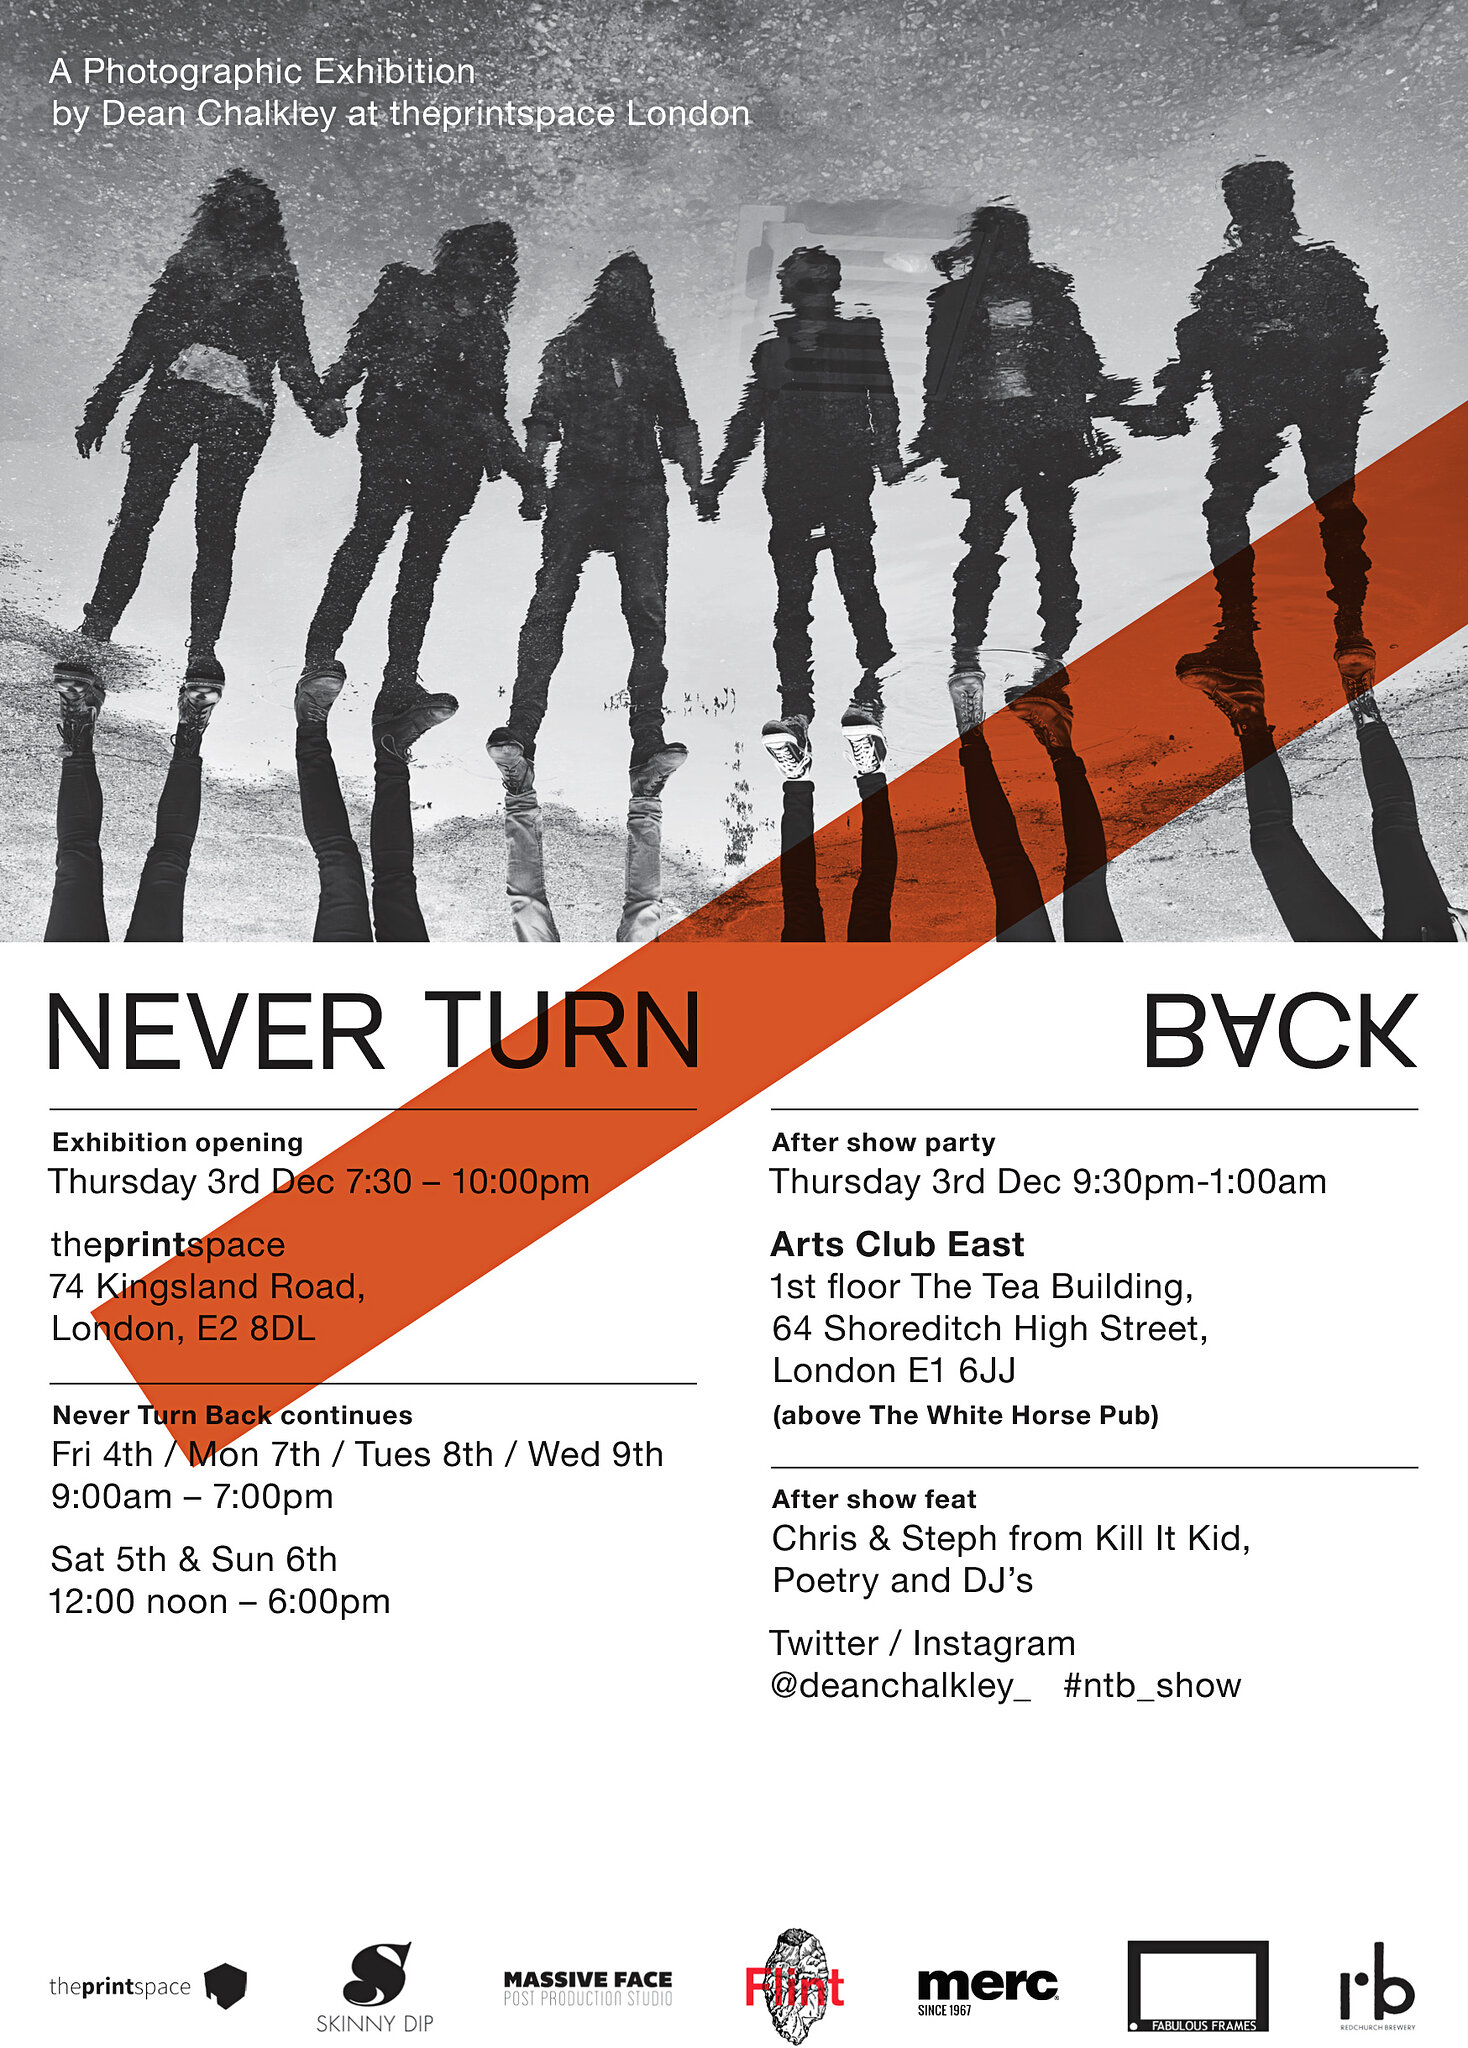 Never Turn Back: Official Invitation